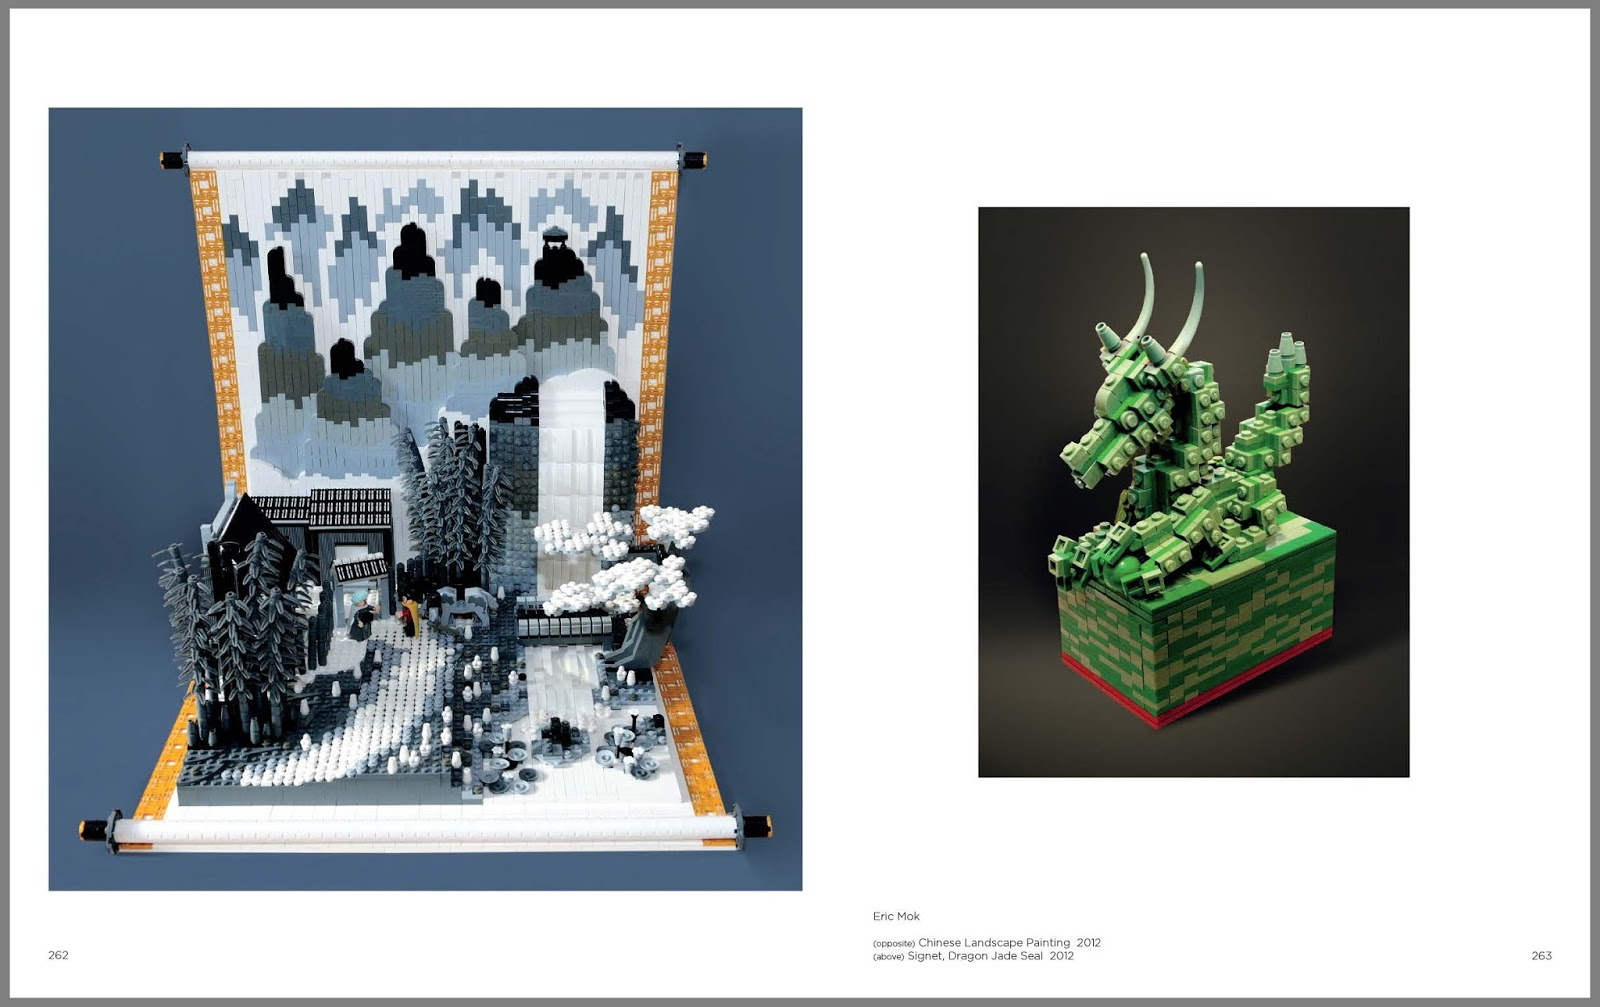 Lego coffee table book